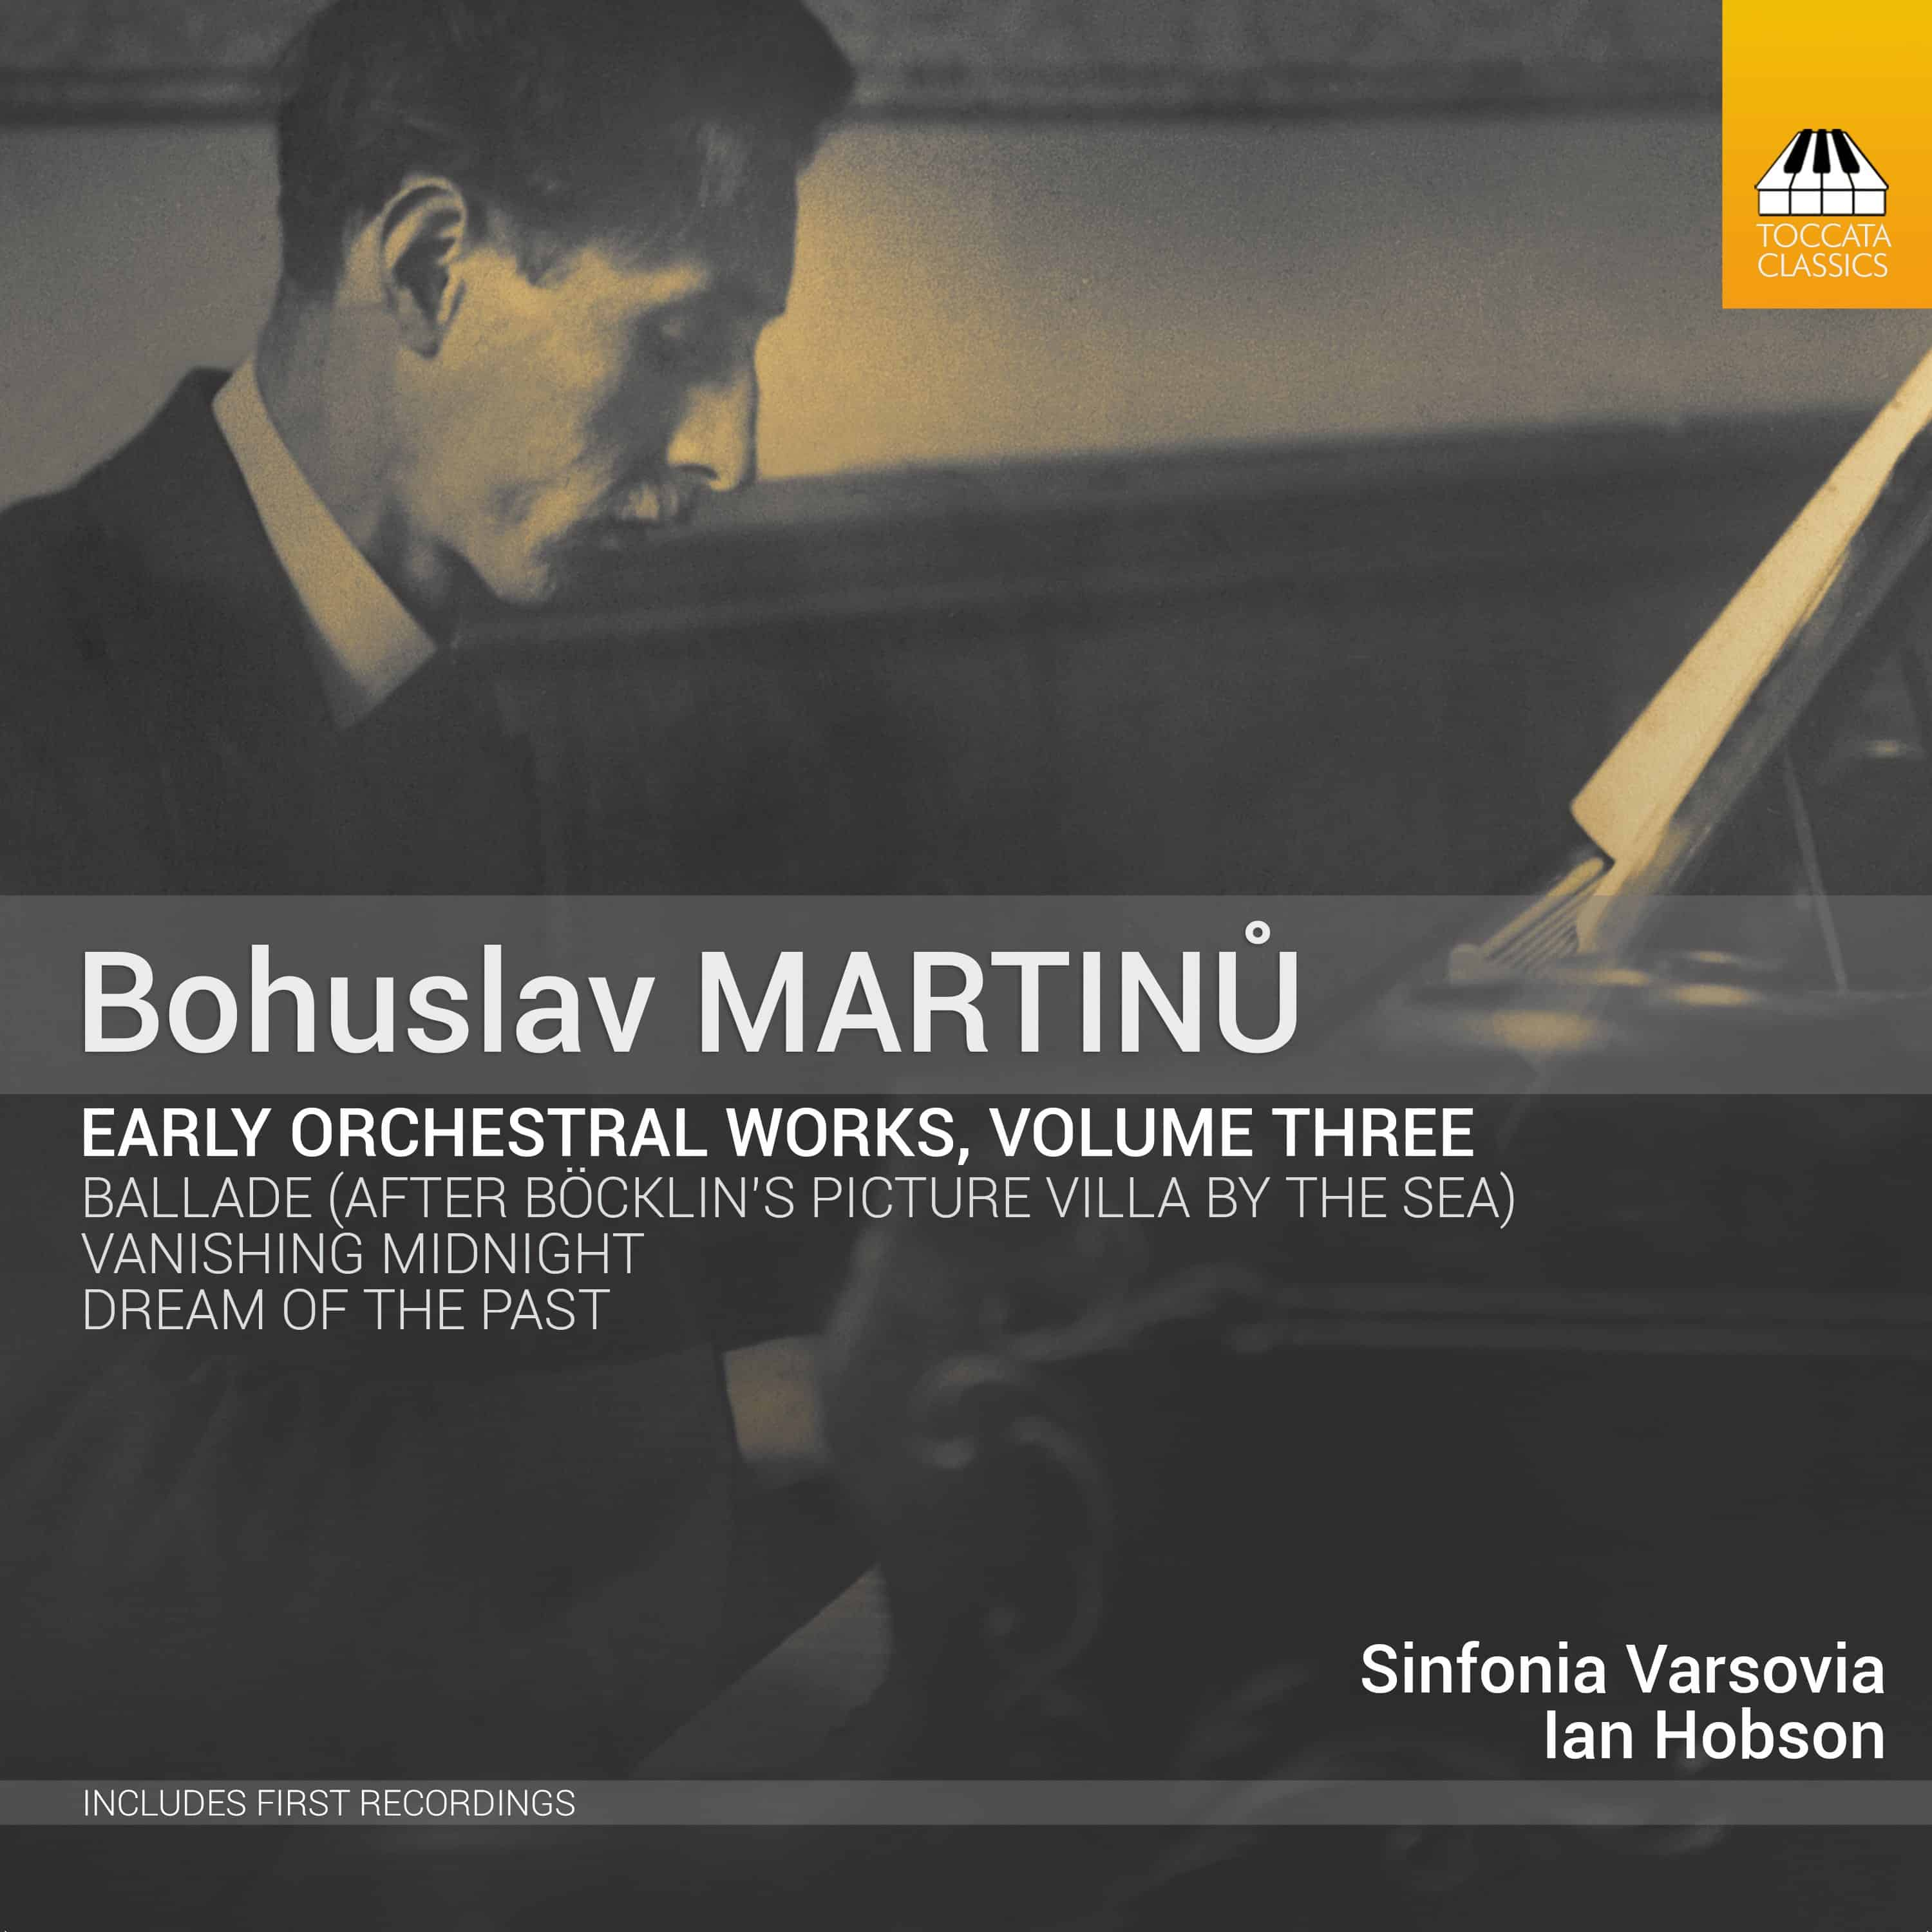 Bohuslav Martinů: Early Orchestral Works